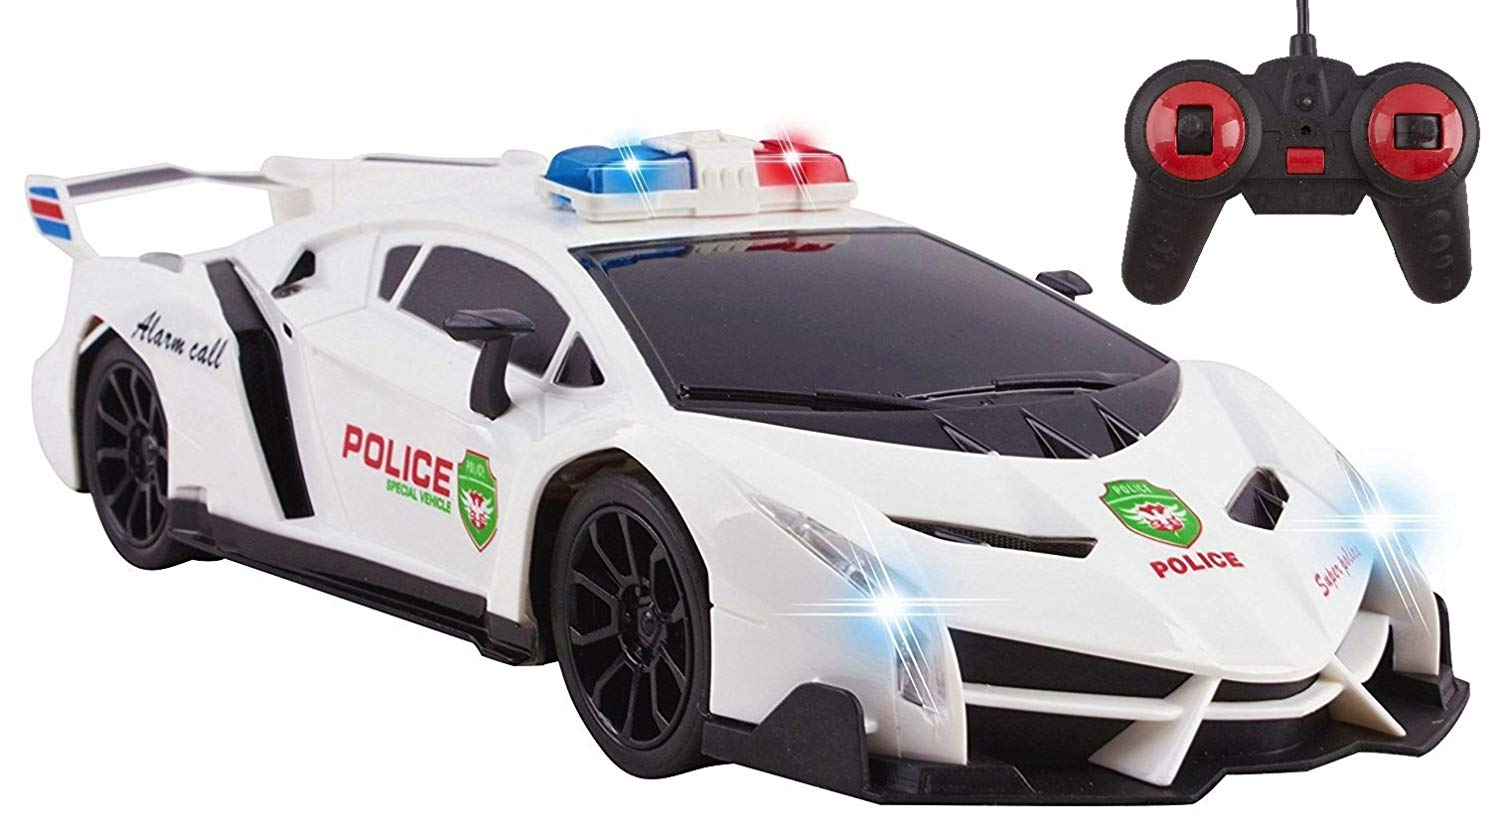 Police RC Car For Kids Super Exotic Large Remote Control Easy To Operate Toy Sports Car with Working... by Vokodo